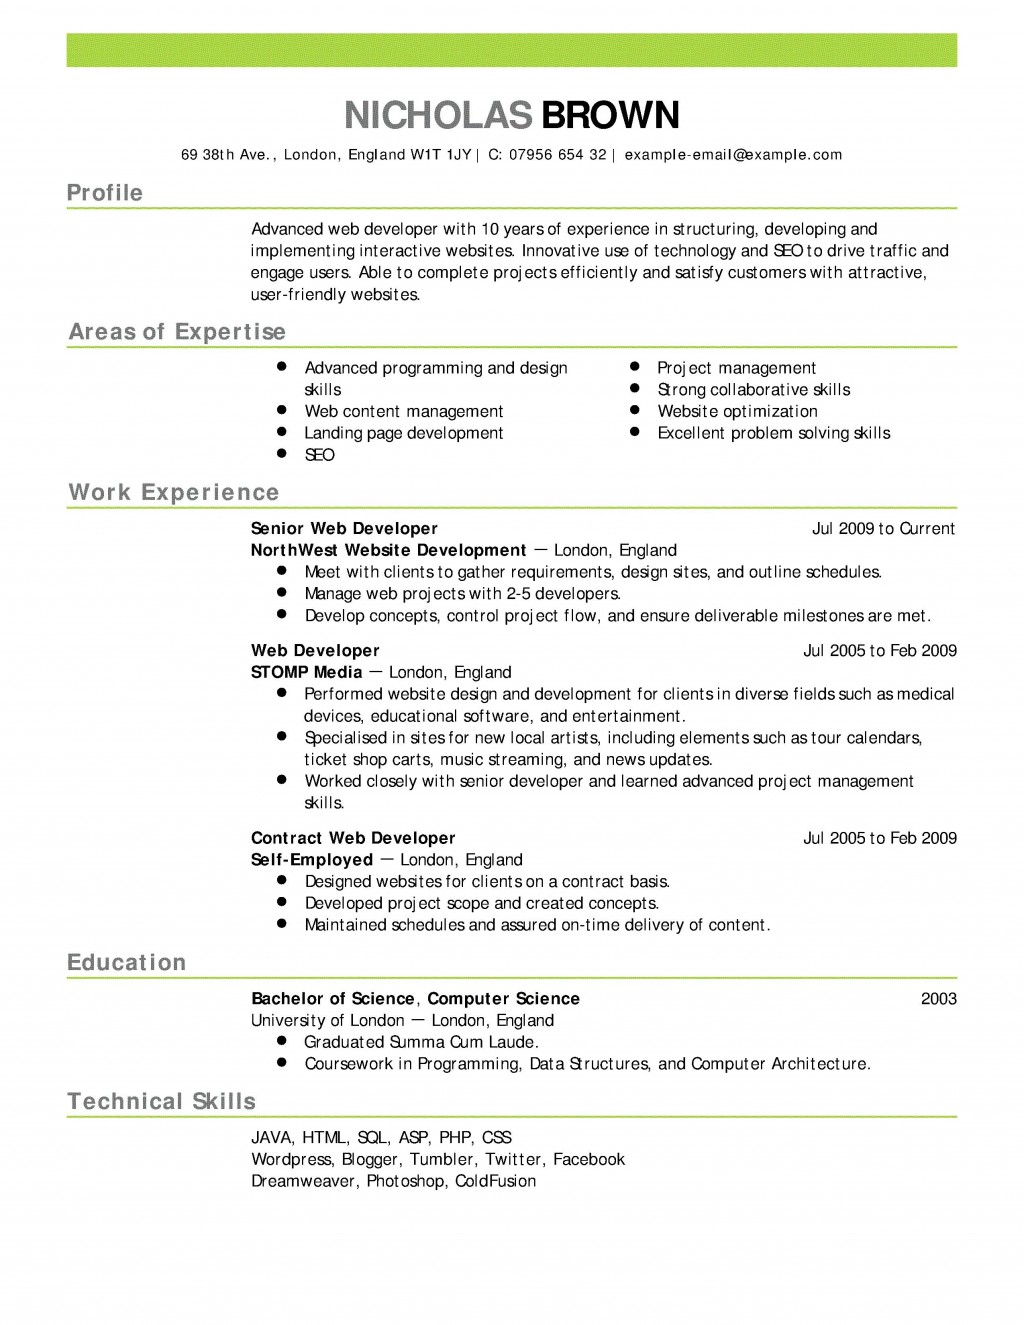 007 Rare Resume Template For Wordpad Picture  Free Cv DownloadLarge